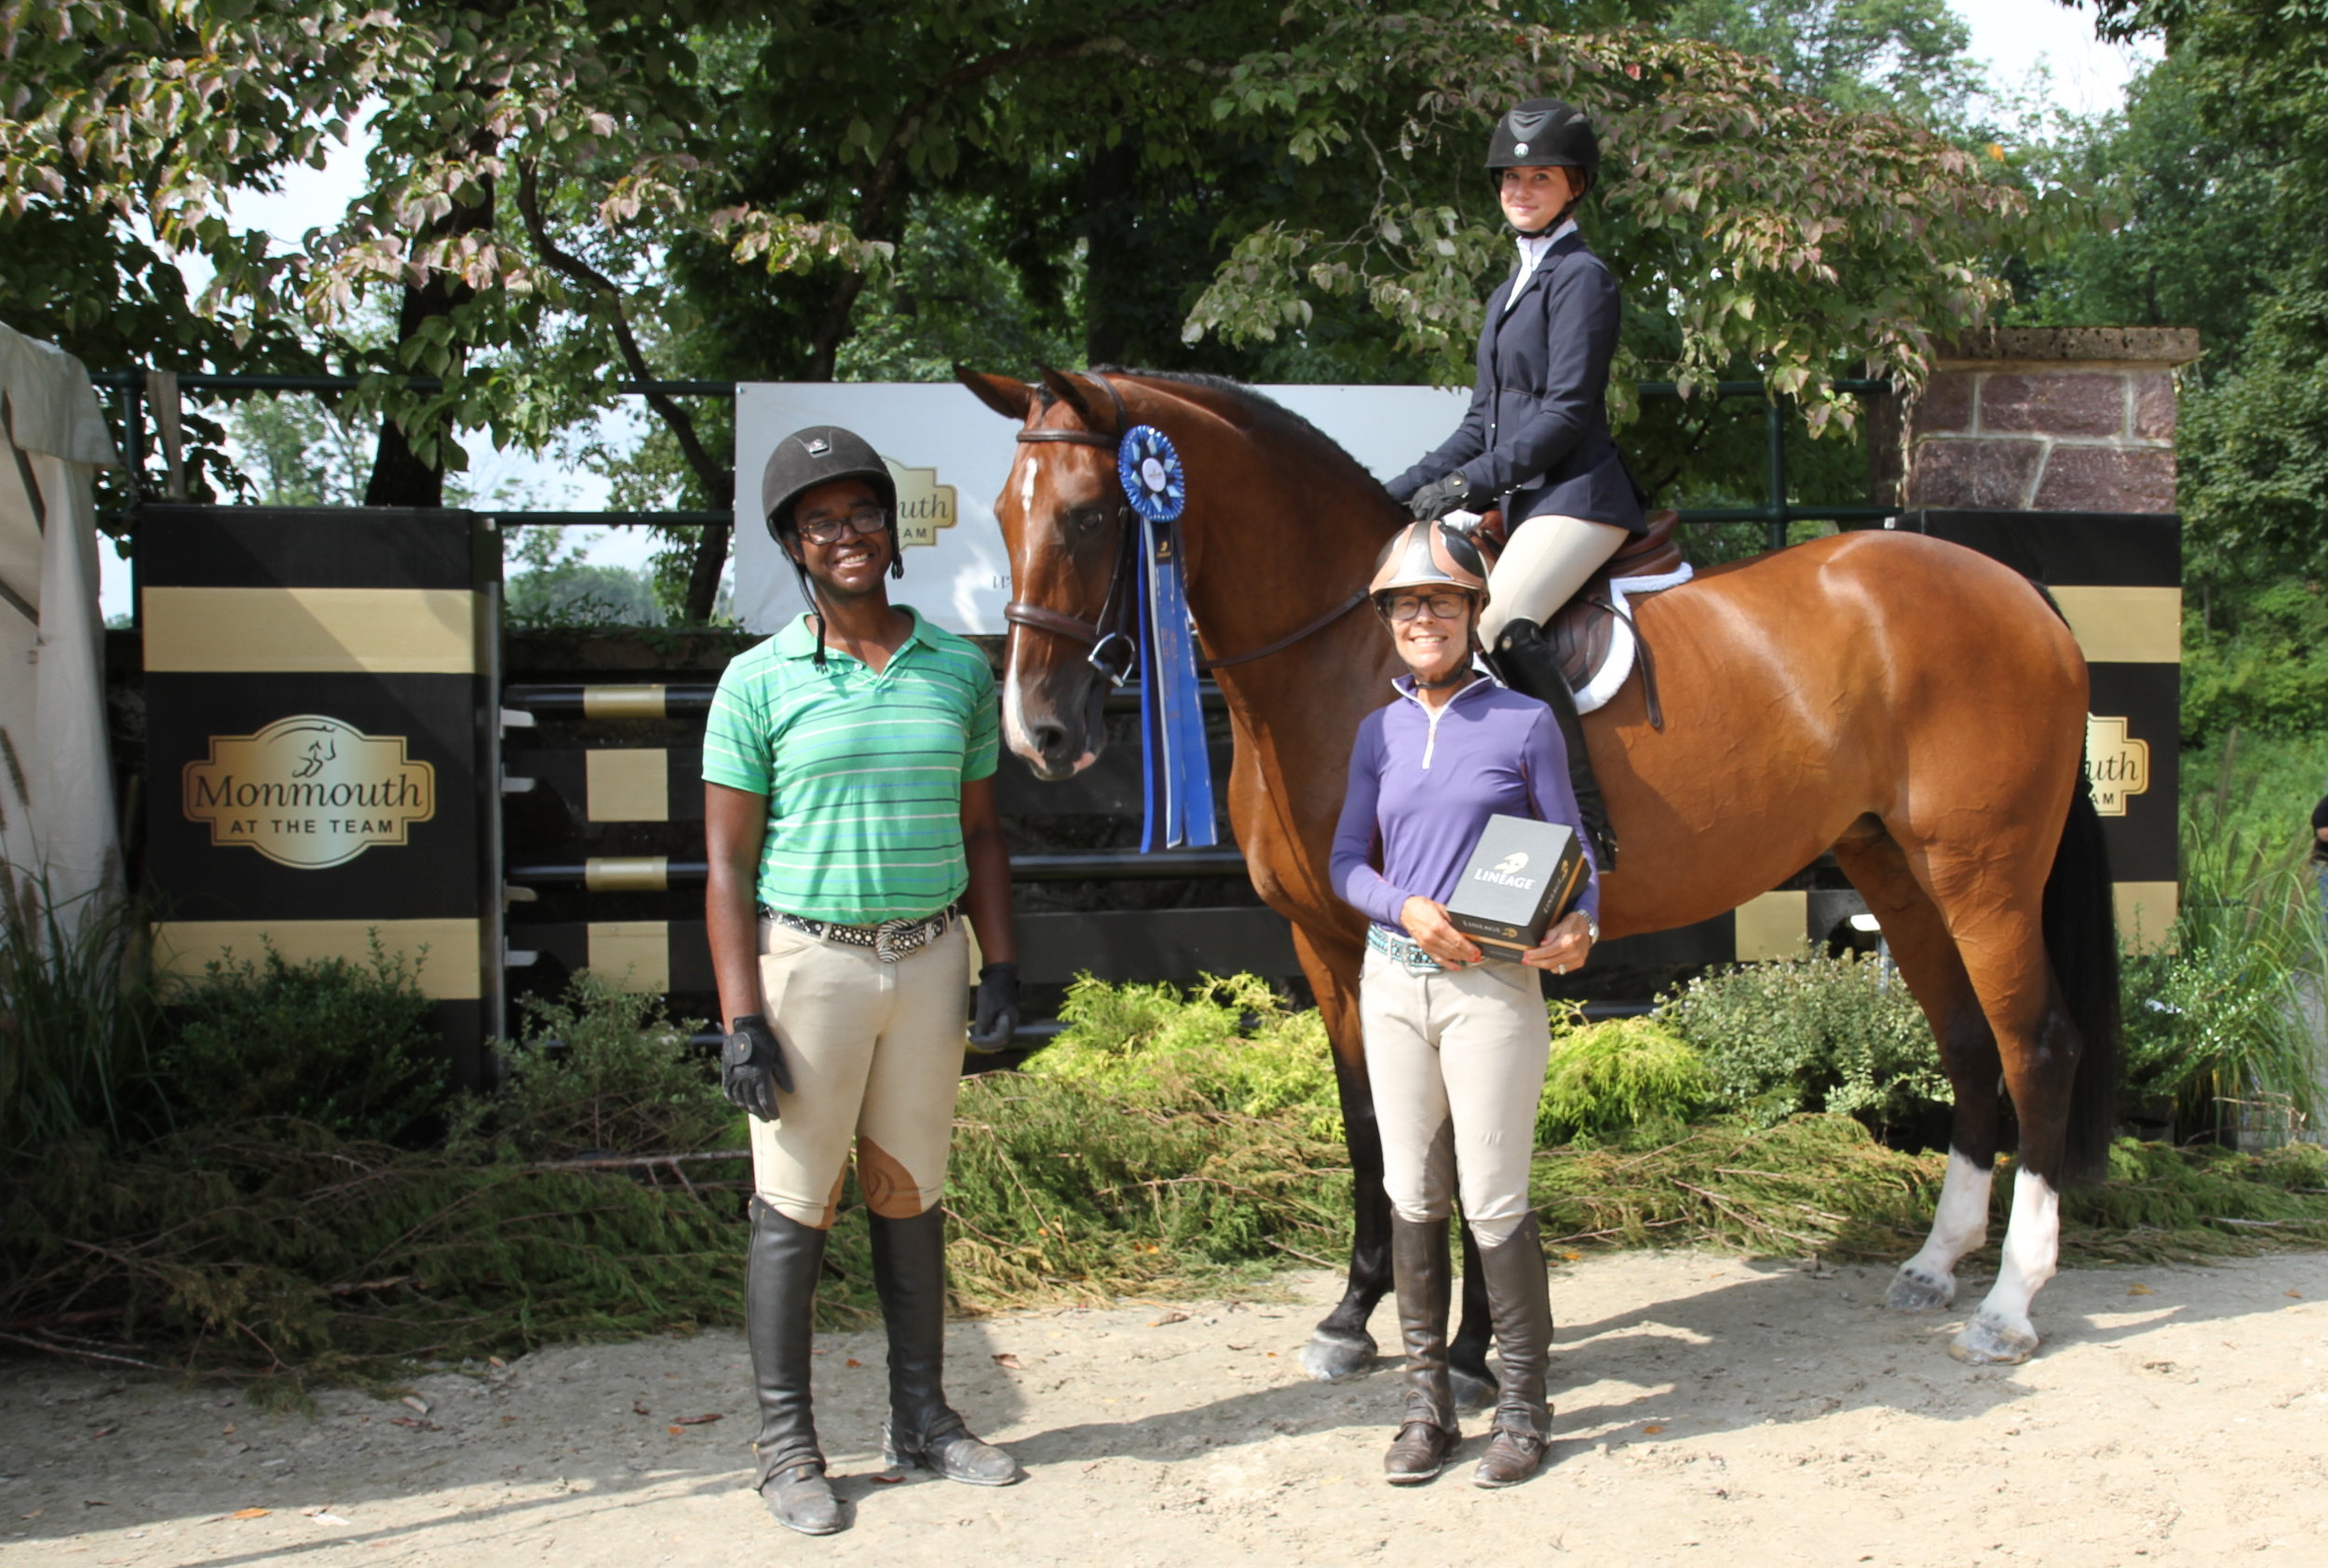 Carmella Cacciatore won Wednesday's Sportsmanship Award and was presented with a pair of Lineage stirrups. She is aboard Catherine the Great with Charles Brown and Penny Kinnally. Photo by EQ Media